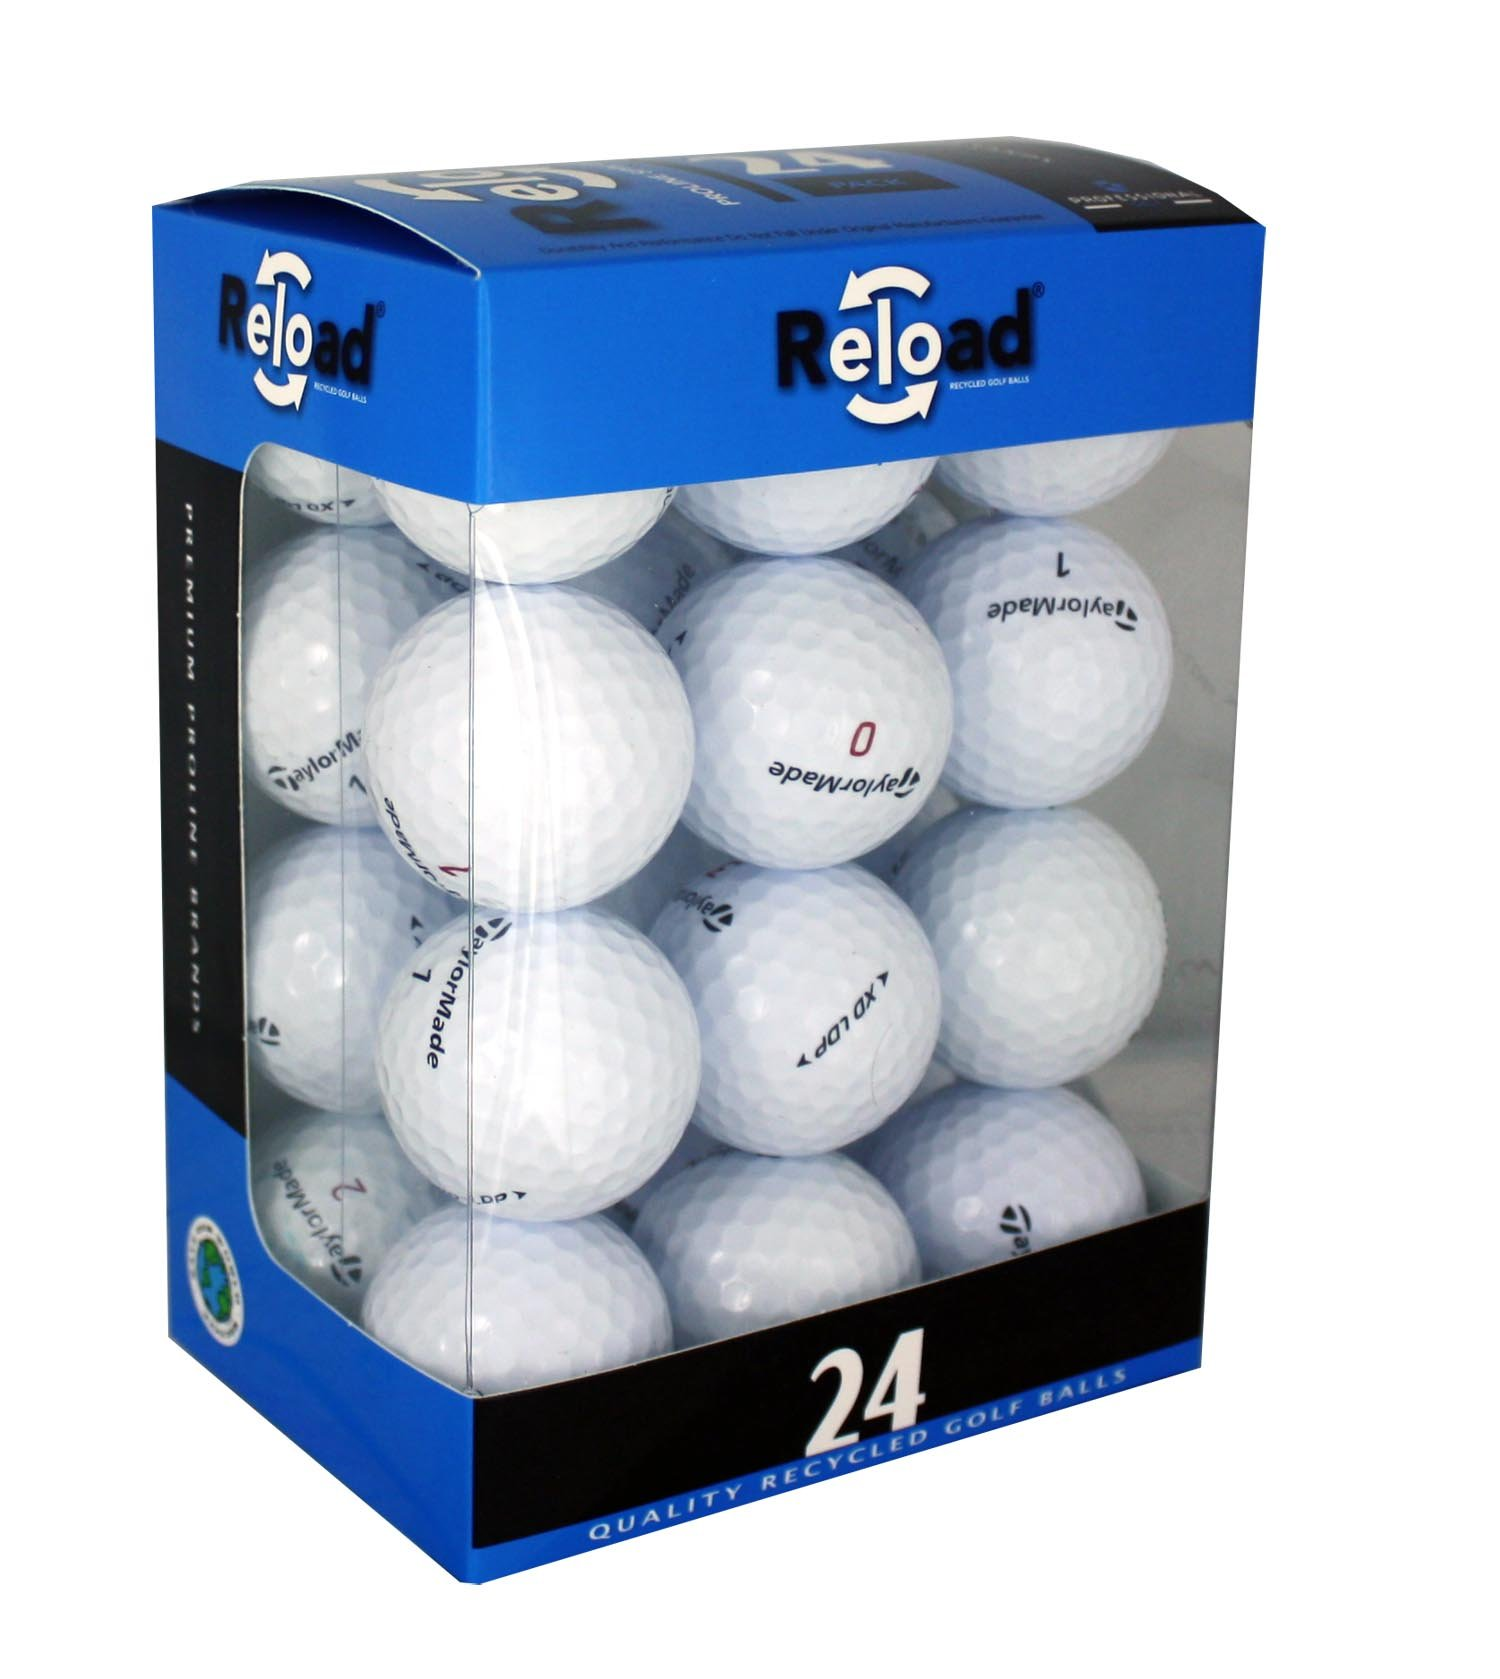 Reload Recycled Golf Balls (24-Pack) of Taylormade Golf Balls